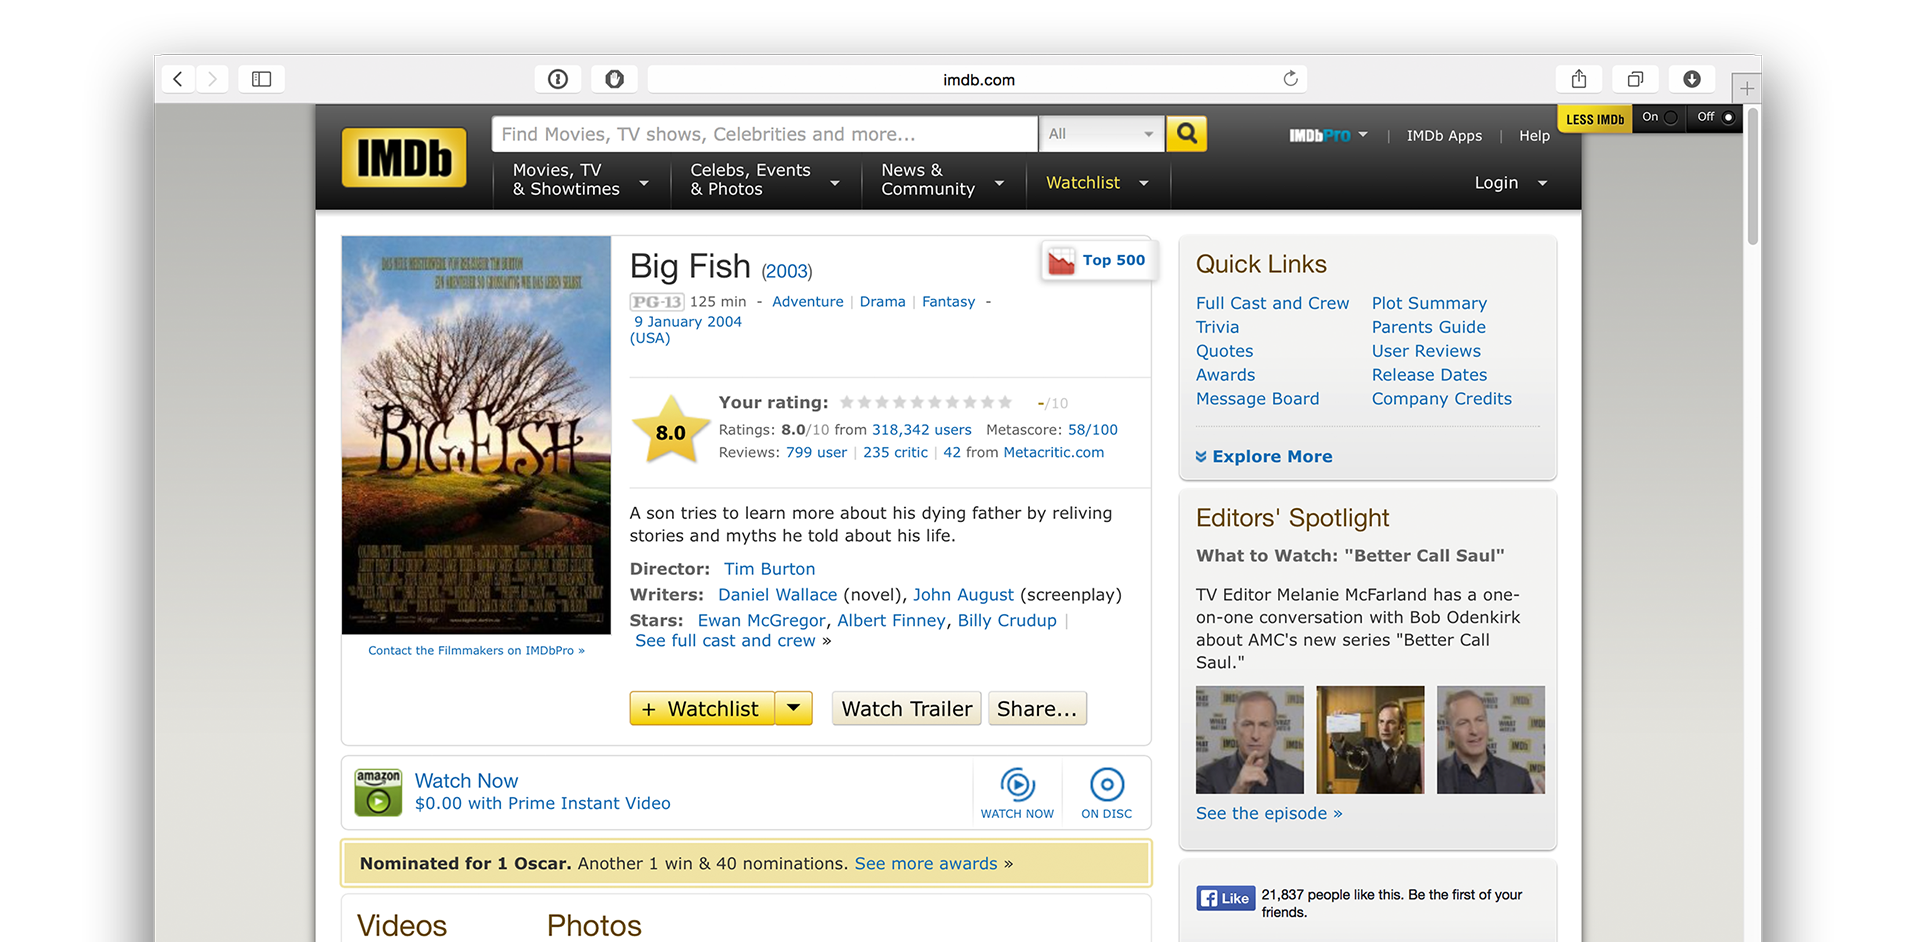 IMDB is one of the largest database for movies as well it's popular movie reviews